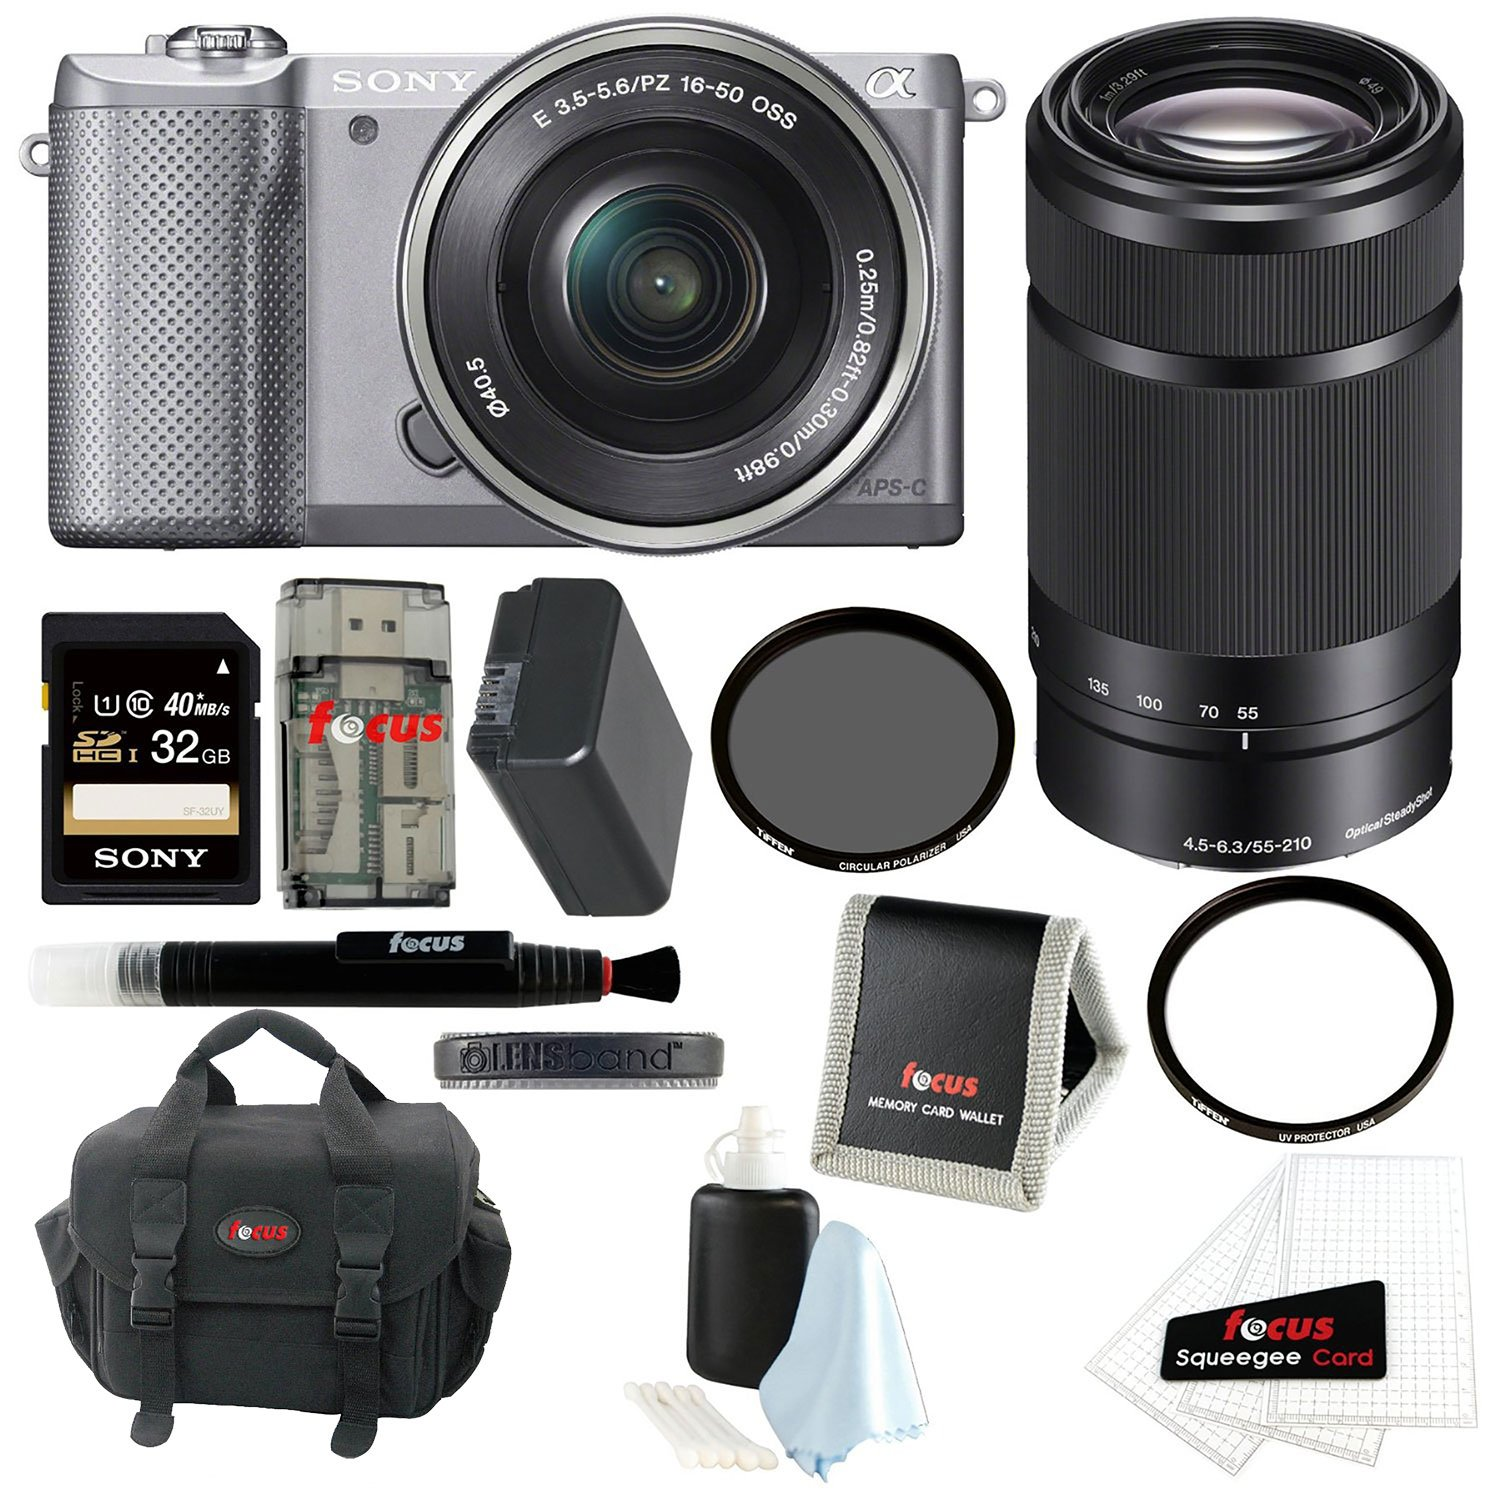 Sony Alpha A5000 ILCE-5000L/S Mirrorless Digital Camera (Silver) + Sony SEL55210/B 55-210mm f/4.5-6.3 Telephoto Lens + Sony 32GB SDHC/SDXC Class 10 UHS-1 Memory Card + Focus Soft Carry Case + NPFW50 Battery for Sony + Accessory Kit